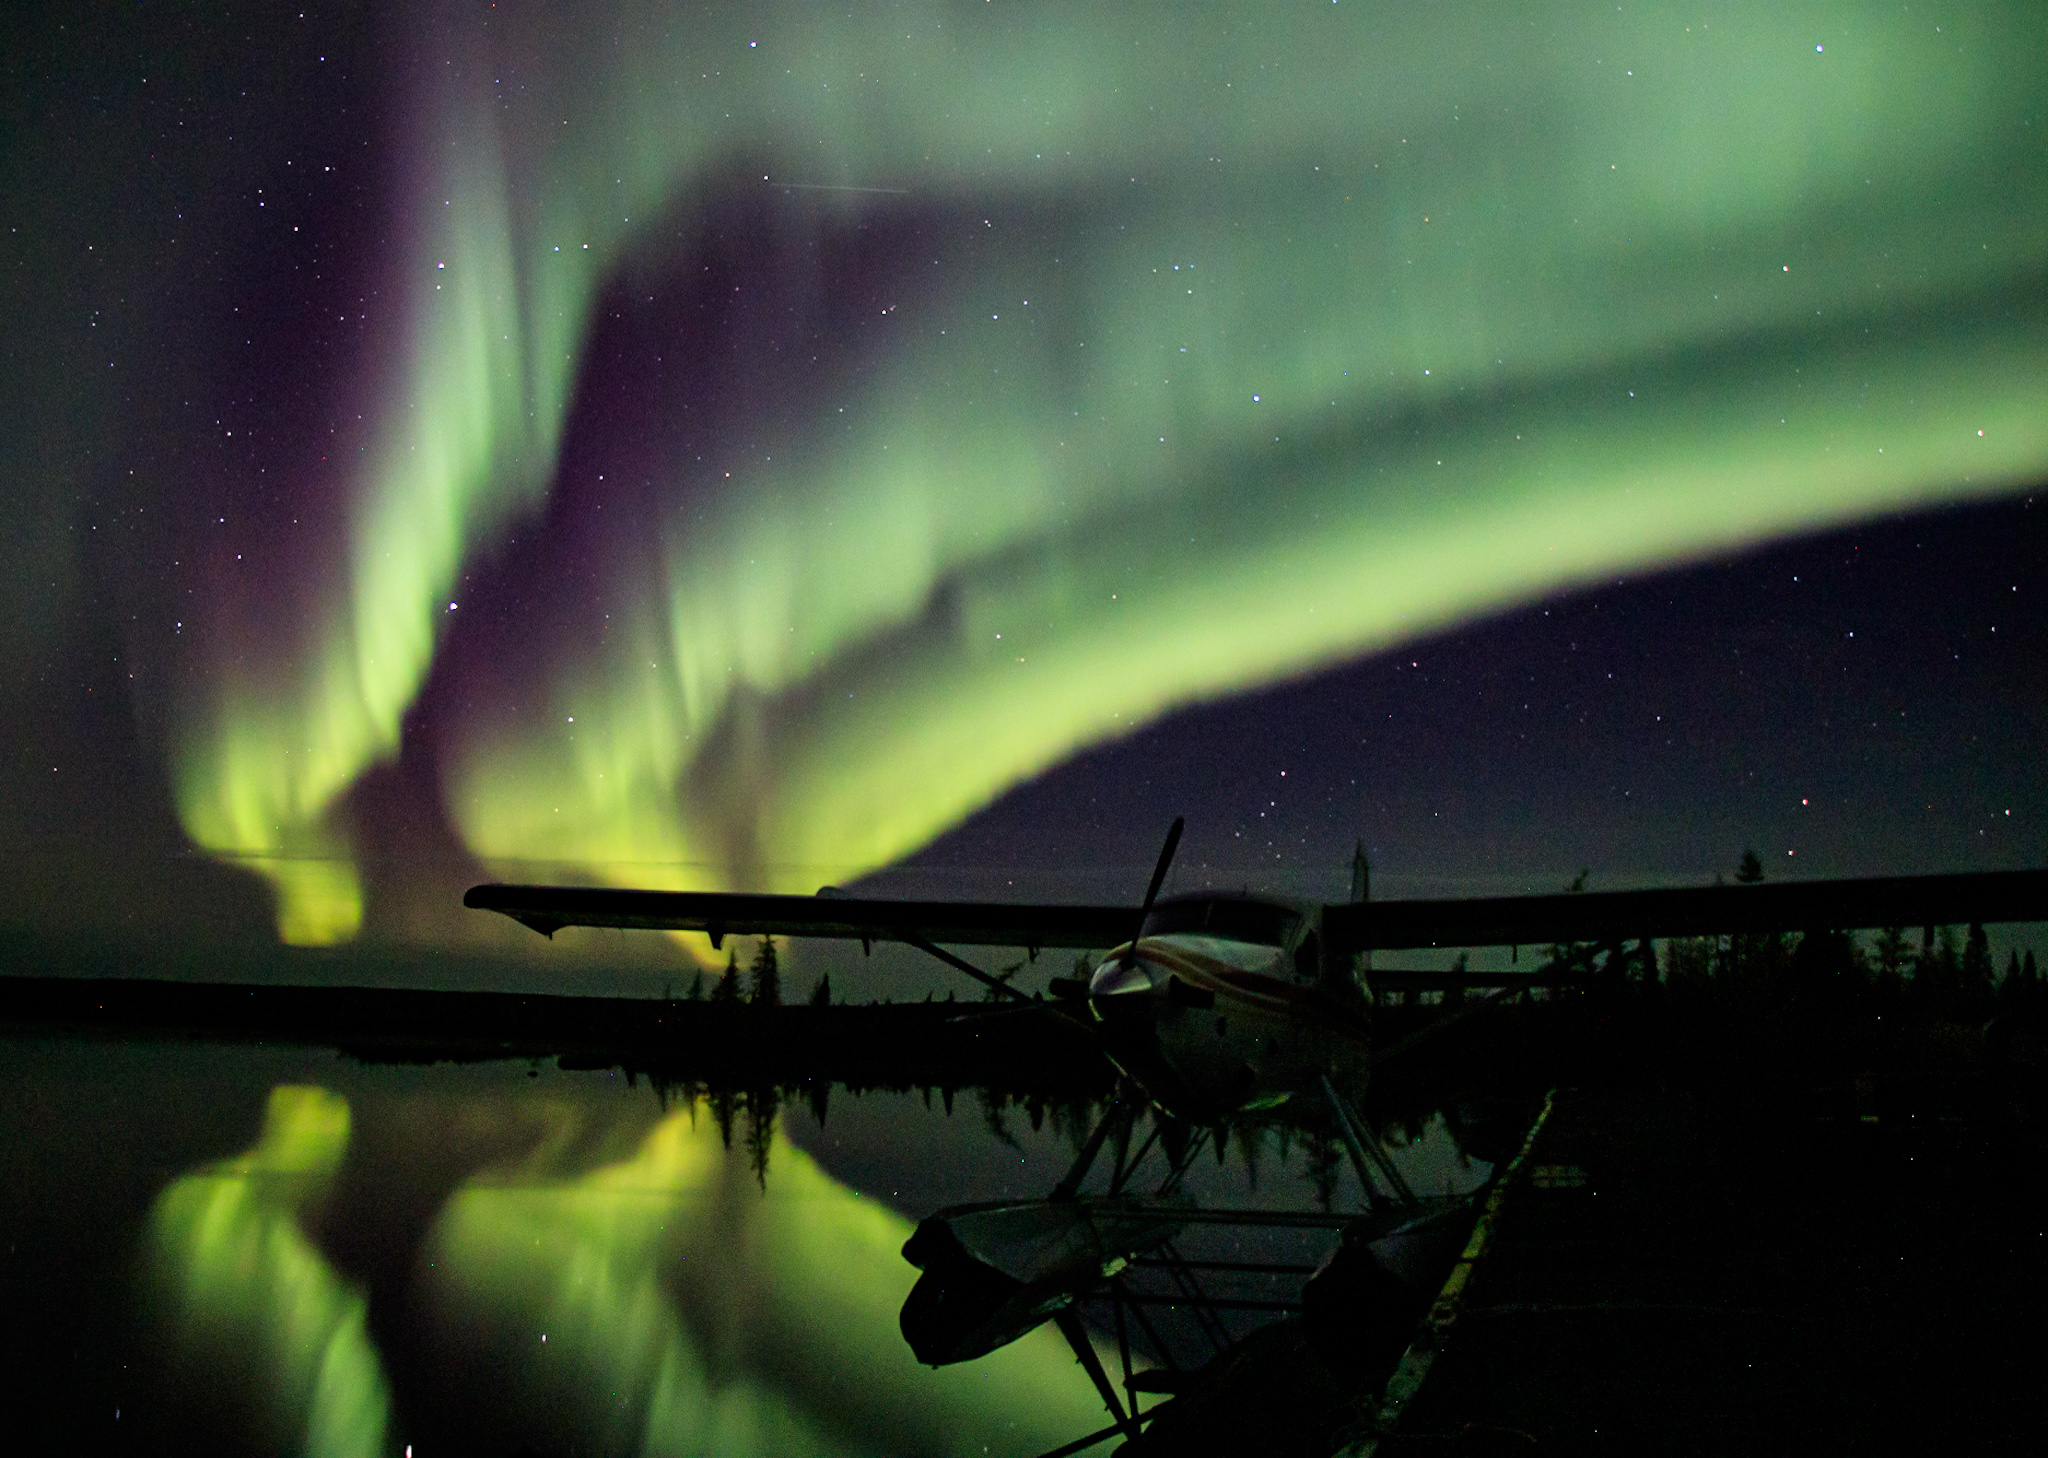 The northern lights glow over Kuujjuaq on Sunday, Oct. 3. In the foreground is the Pengo Pally, the floatplane of legendary Inuit bush pilot Johnny May. (Photo by Maxence Chavanne)